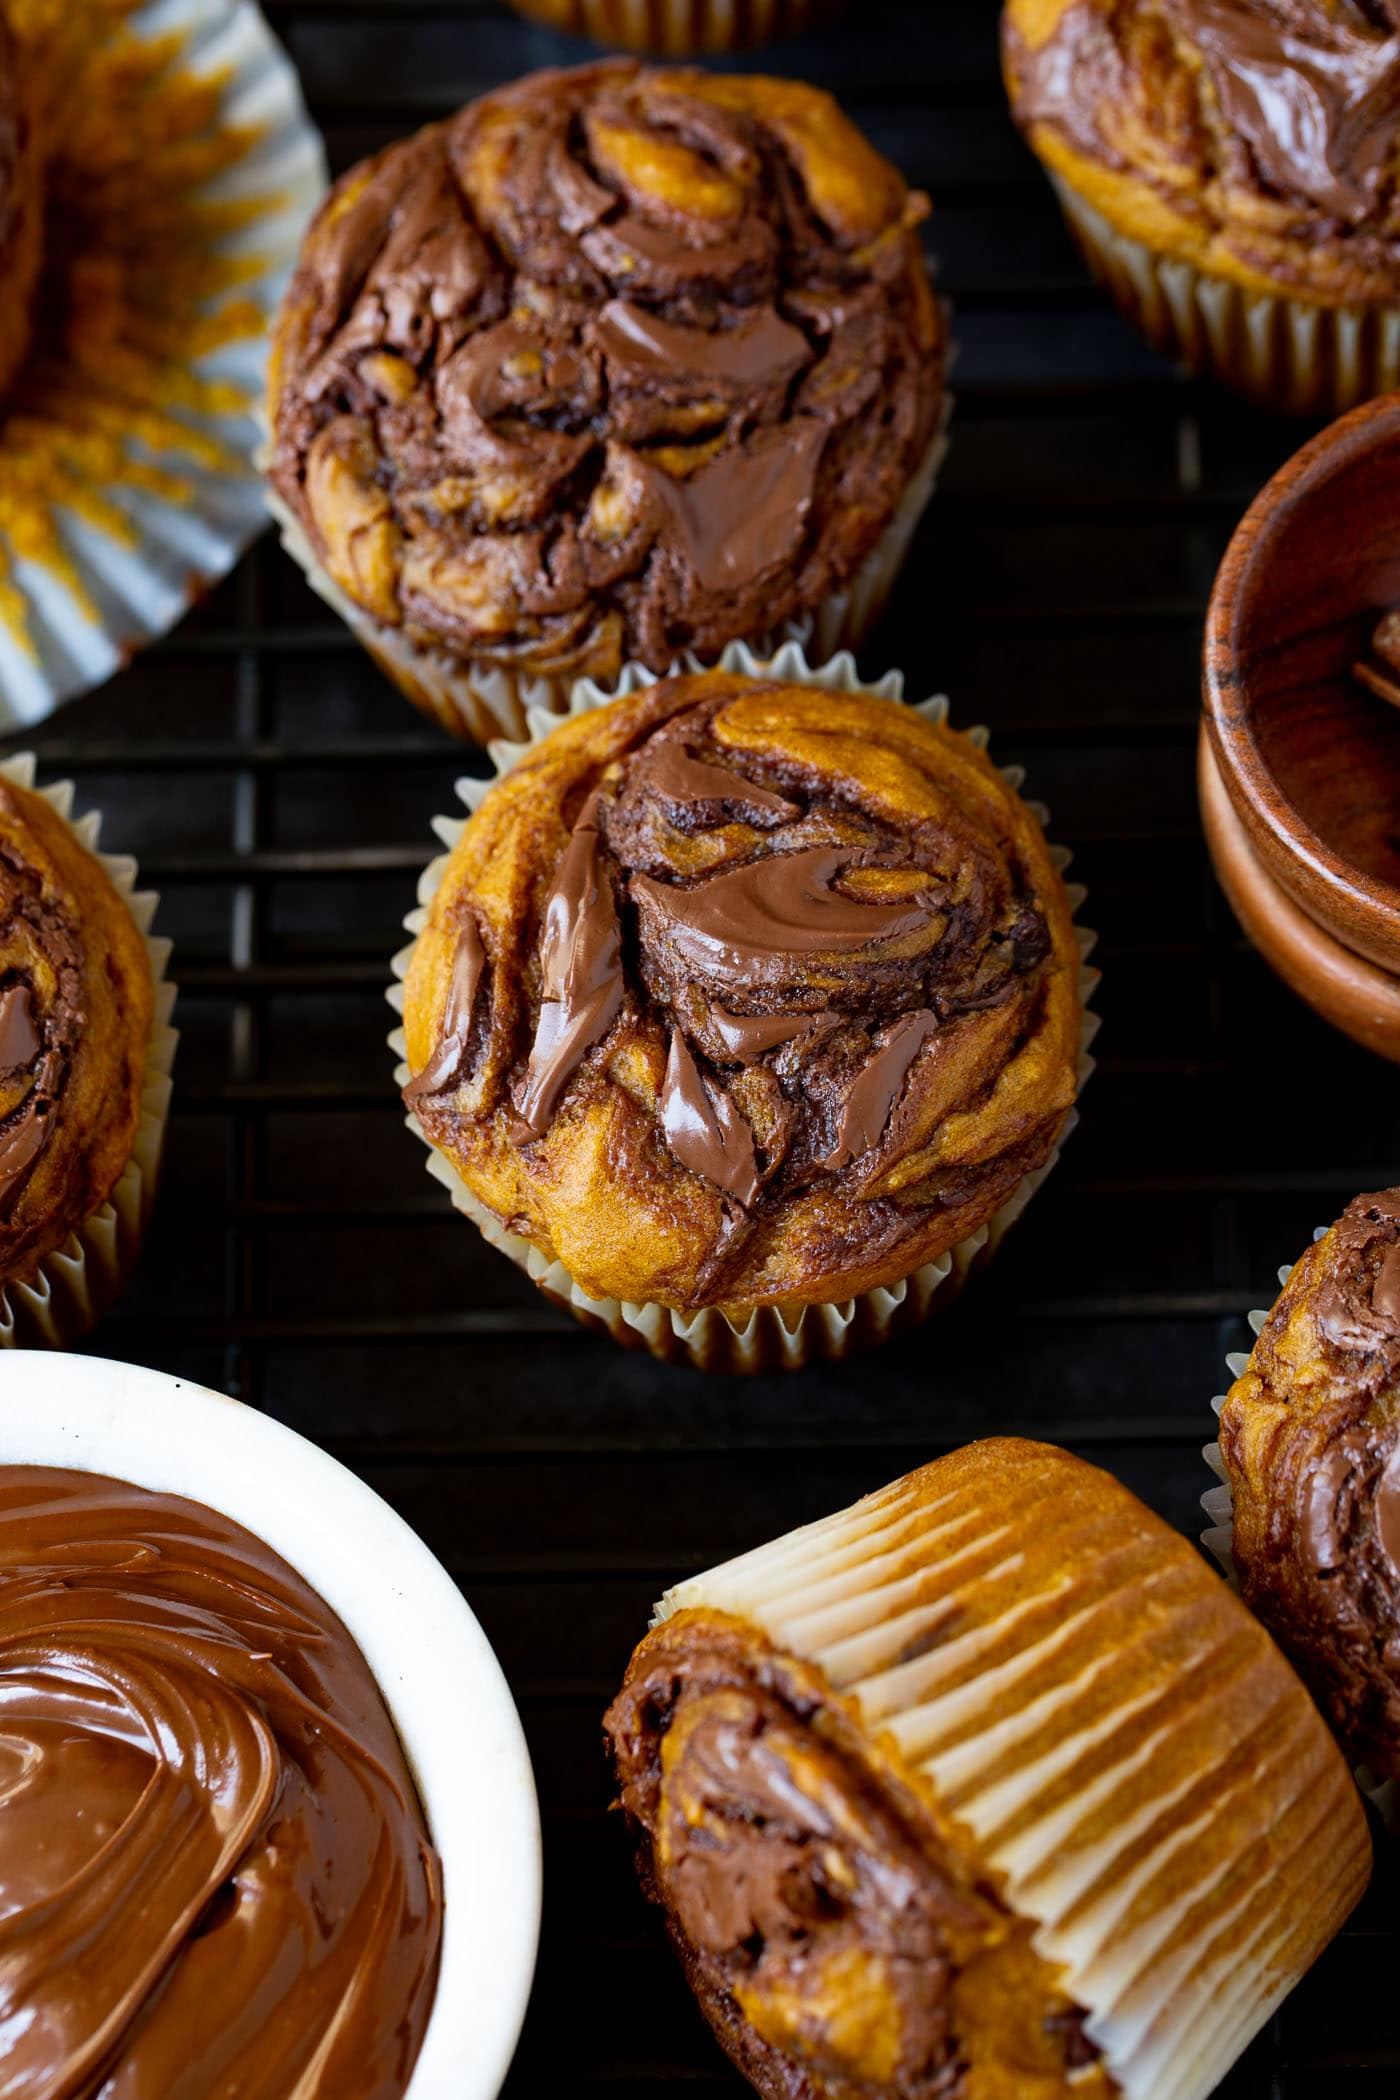 Nutella swirled pumpkin muffins. Nutella has been swirled through the muffin before being baked. A small bowl of Nutella sits next to the muffins.